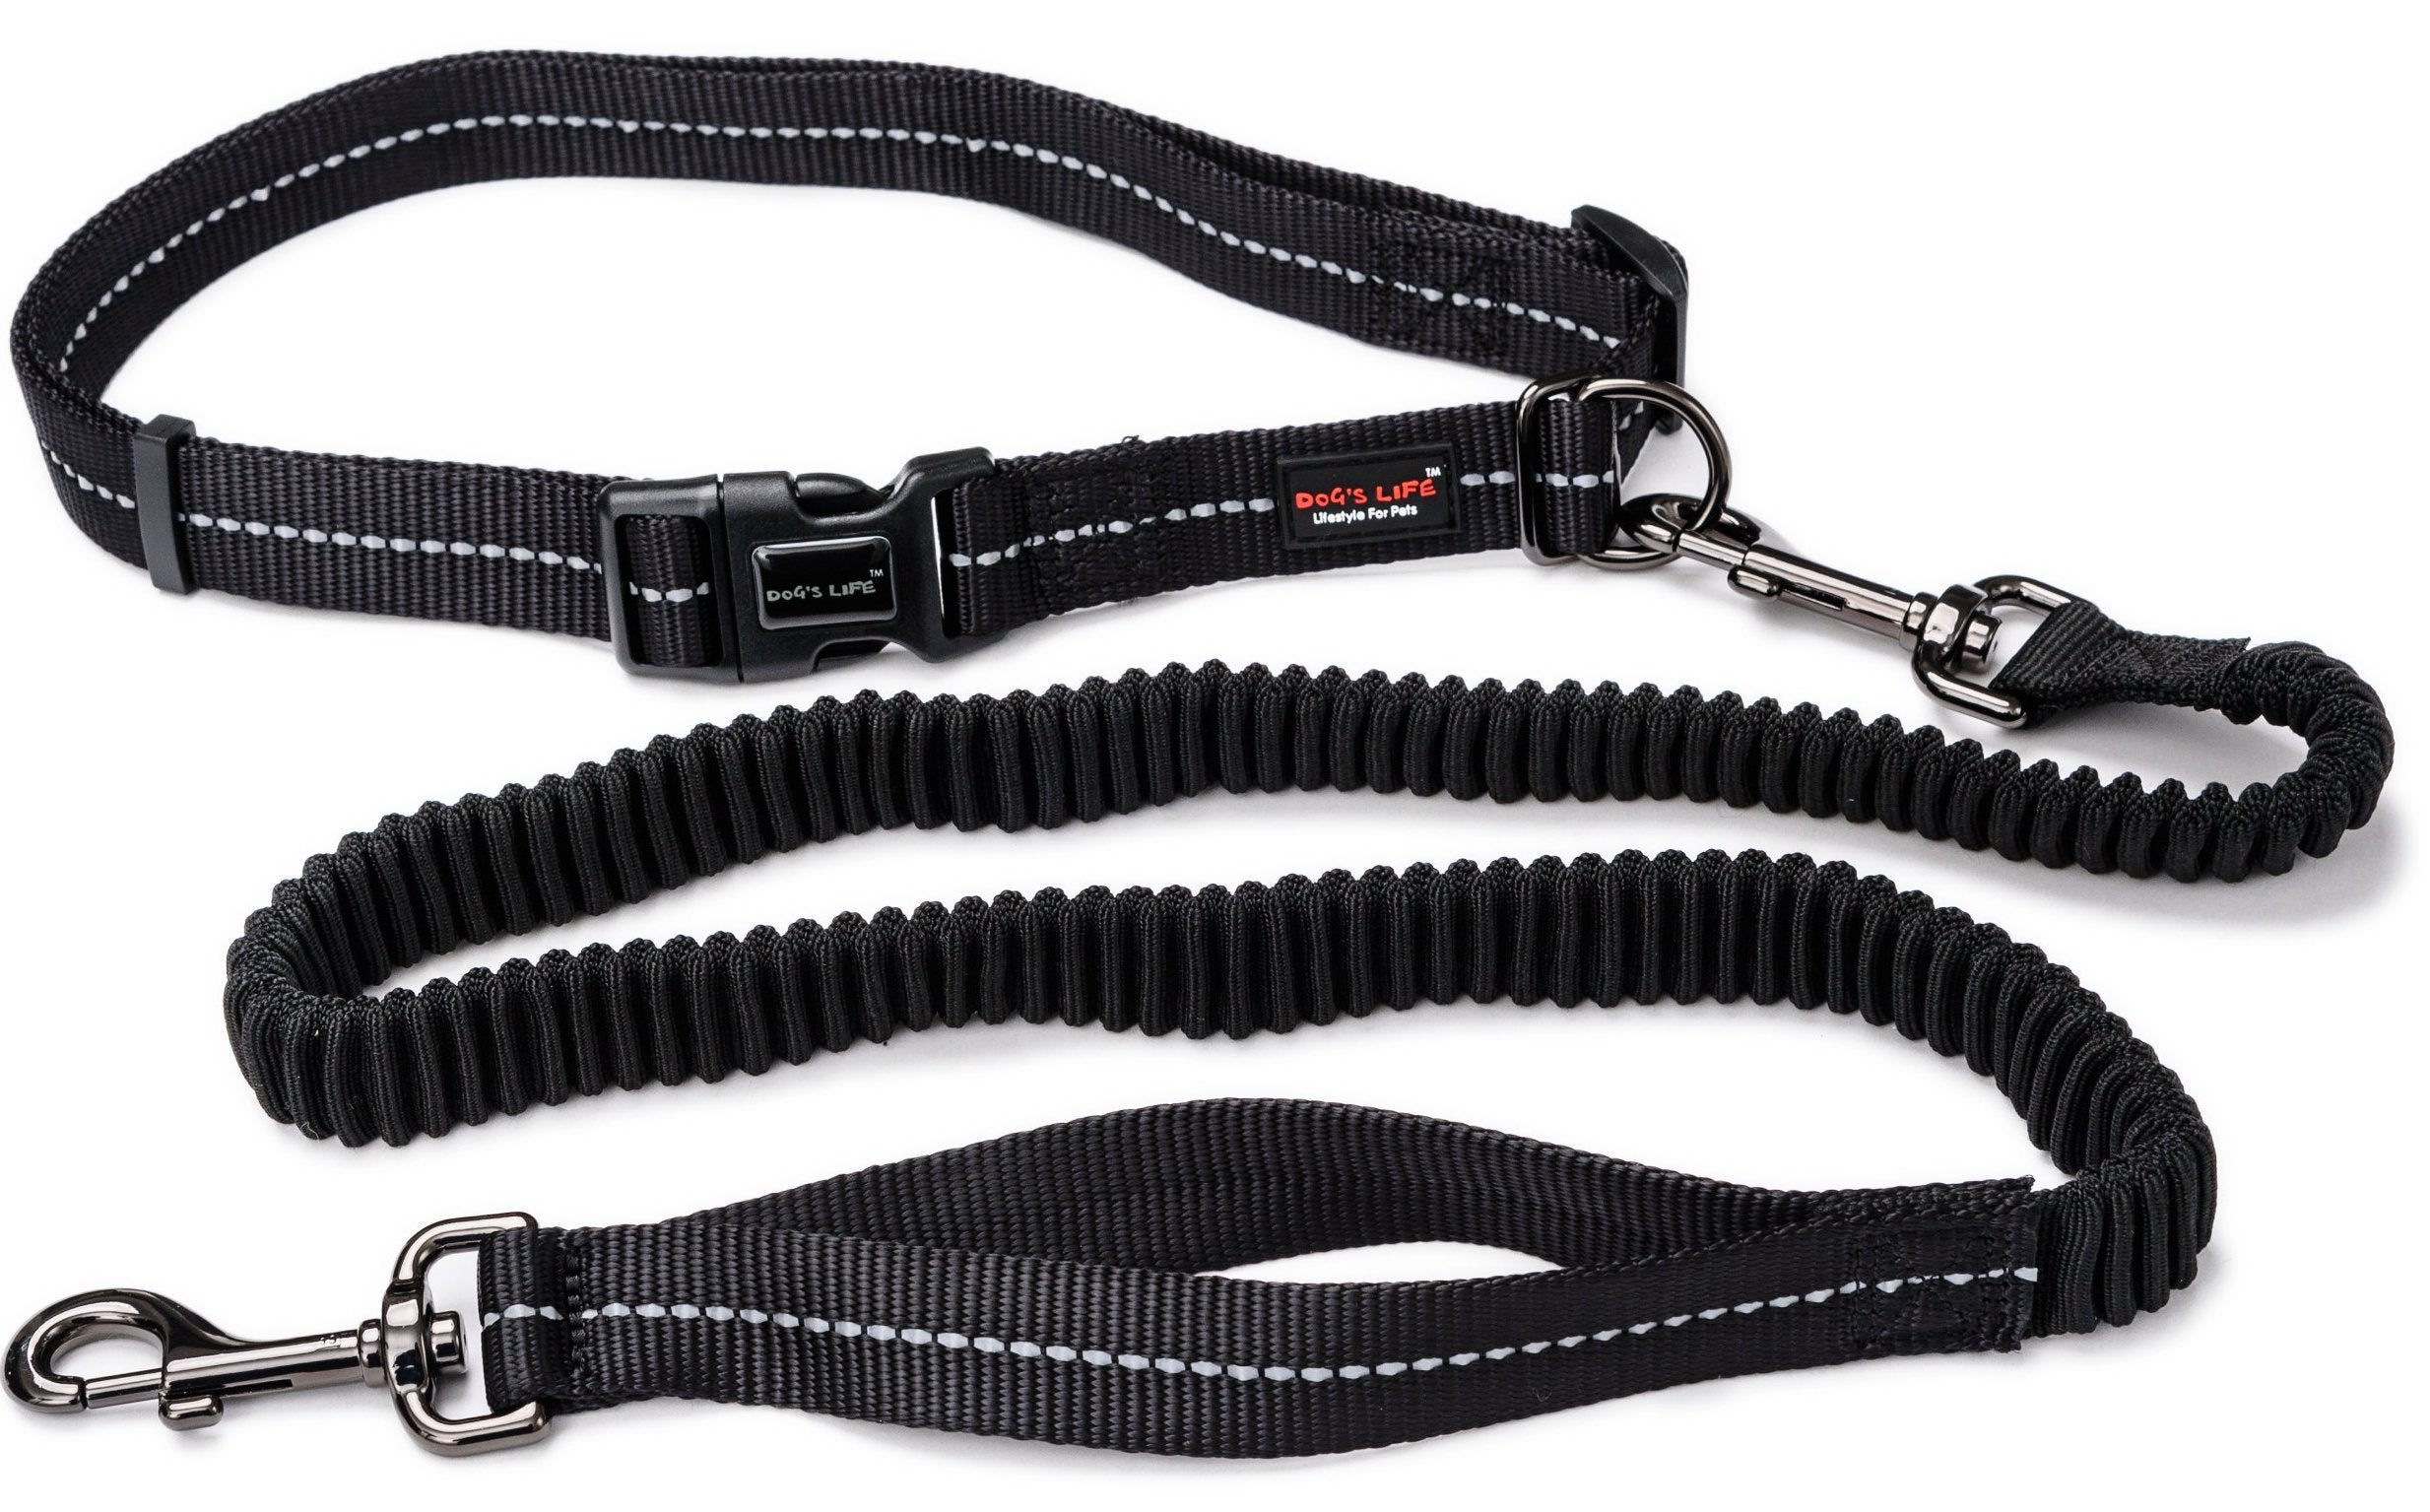 Dog's Life durable long lasting leash for people that excercise with their dogs, rflective supersoft running leash, dog leash for running, durable reflective leash